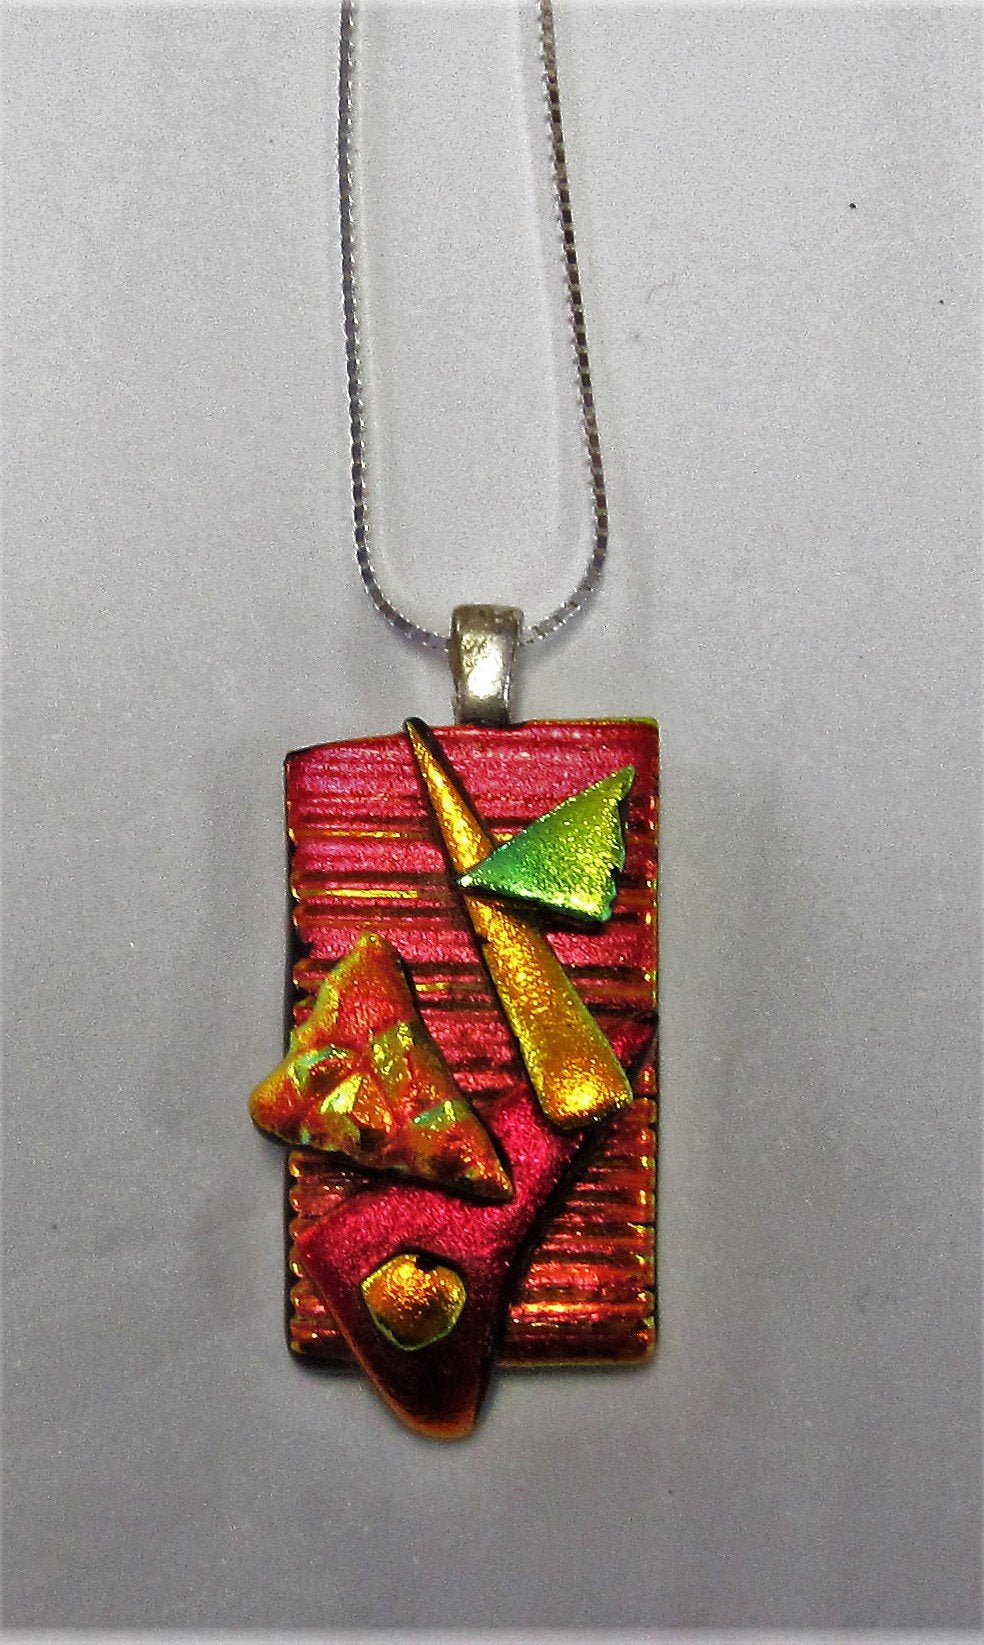 Handcrafted dichroic glass pendant on a sterling silver necklace